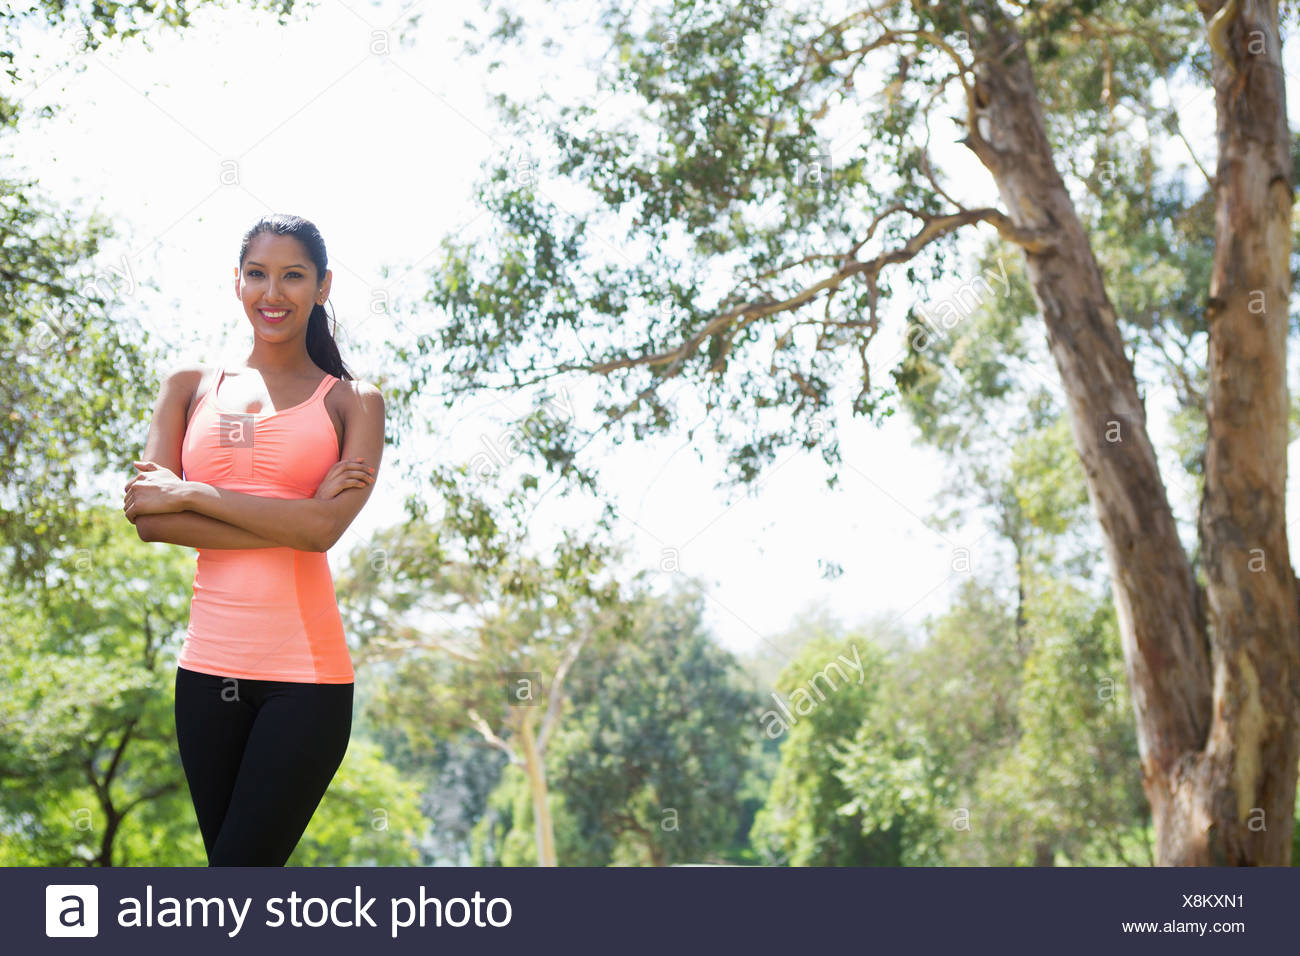 Young woman in park, portrait - Stock Image